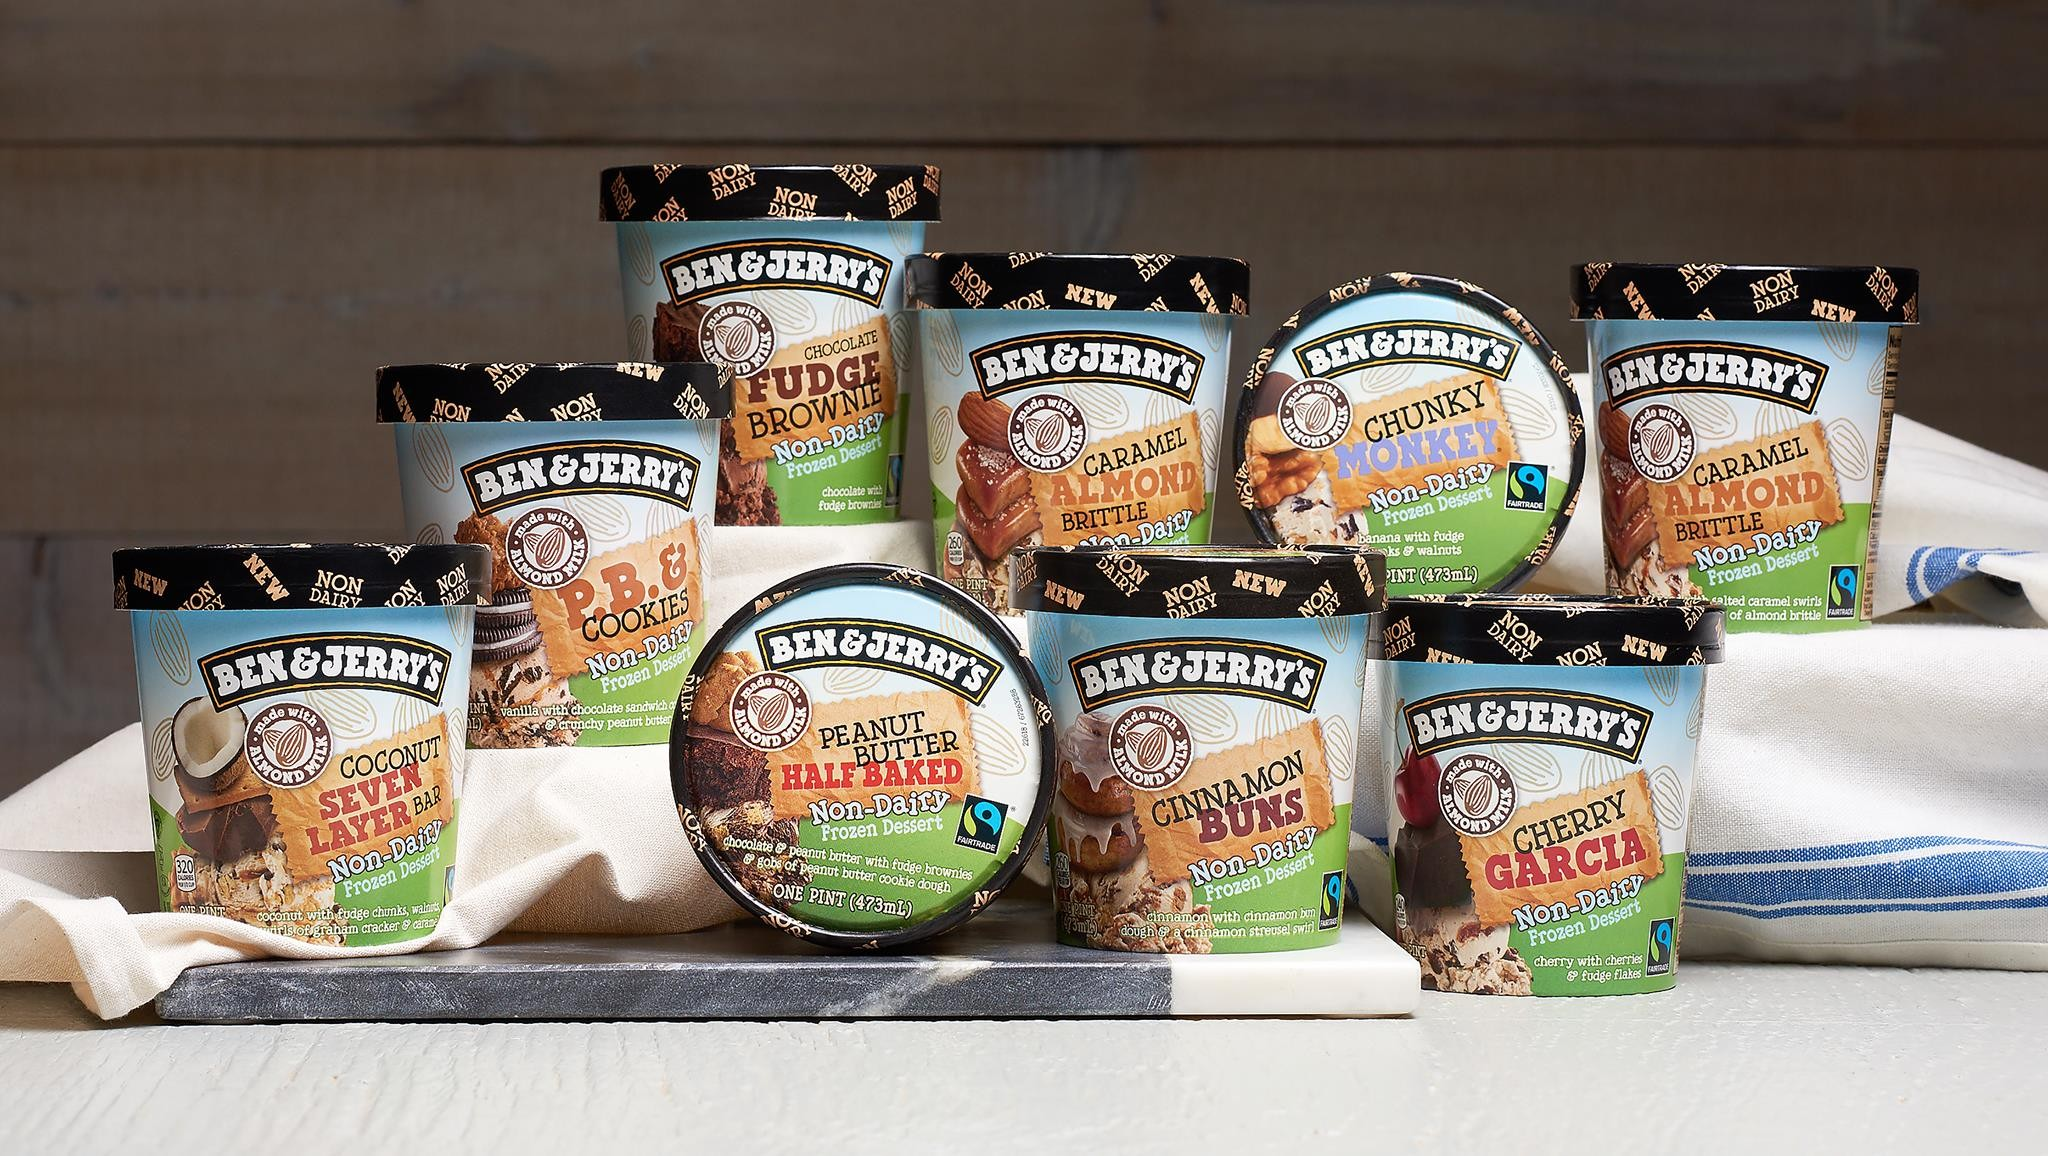 Taste Every Dairy Free Certified Vegan Almond Milk Based Flavor From The Vermont Ice Cream Giants For Classics Like Cherry Garcia And Chunky